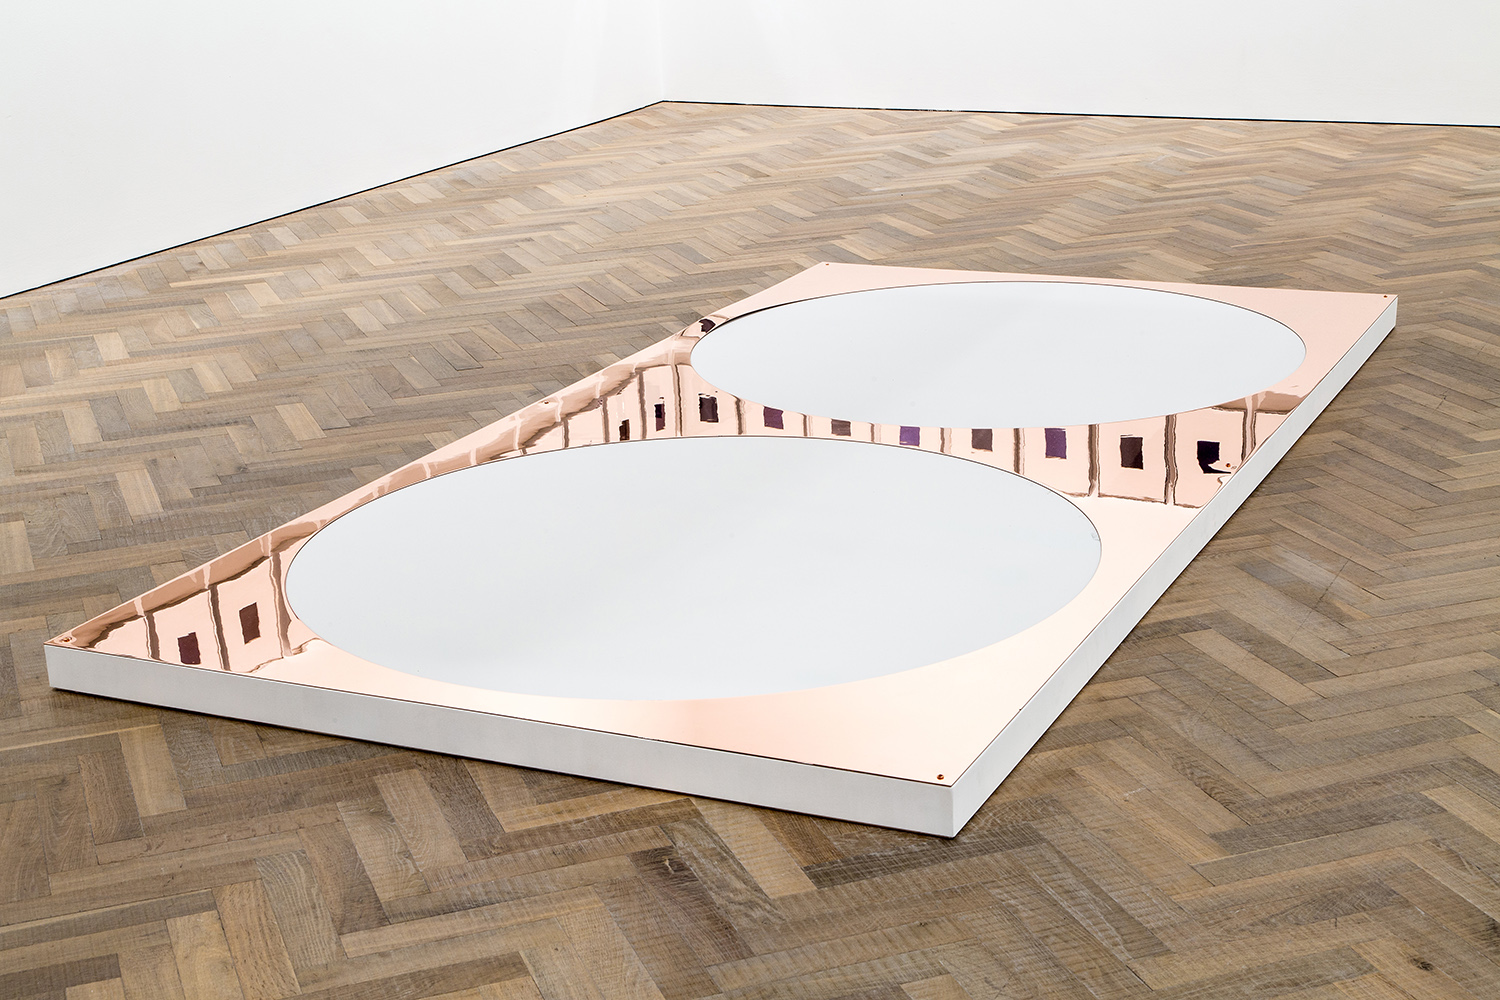 Copper Remnant (Table: designed by unknown, date unknown; Rue de Livourne 35, Brussels, Belgium, September 6, 2011)    2014   Polished copper  120 x 60 inches   Marginalia, 2014